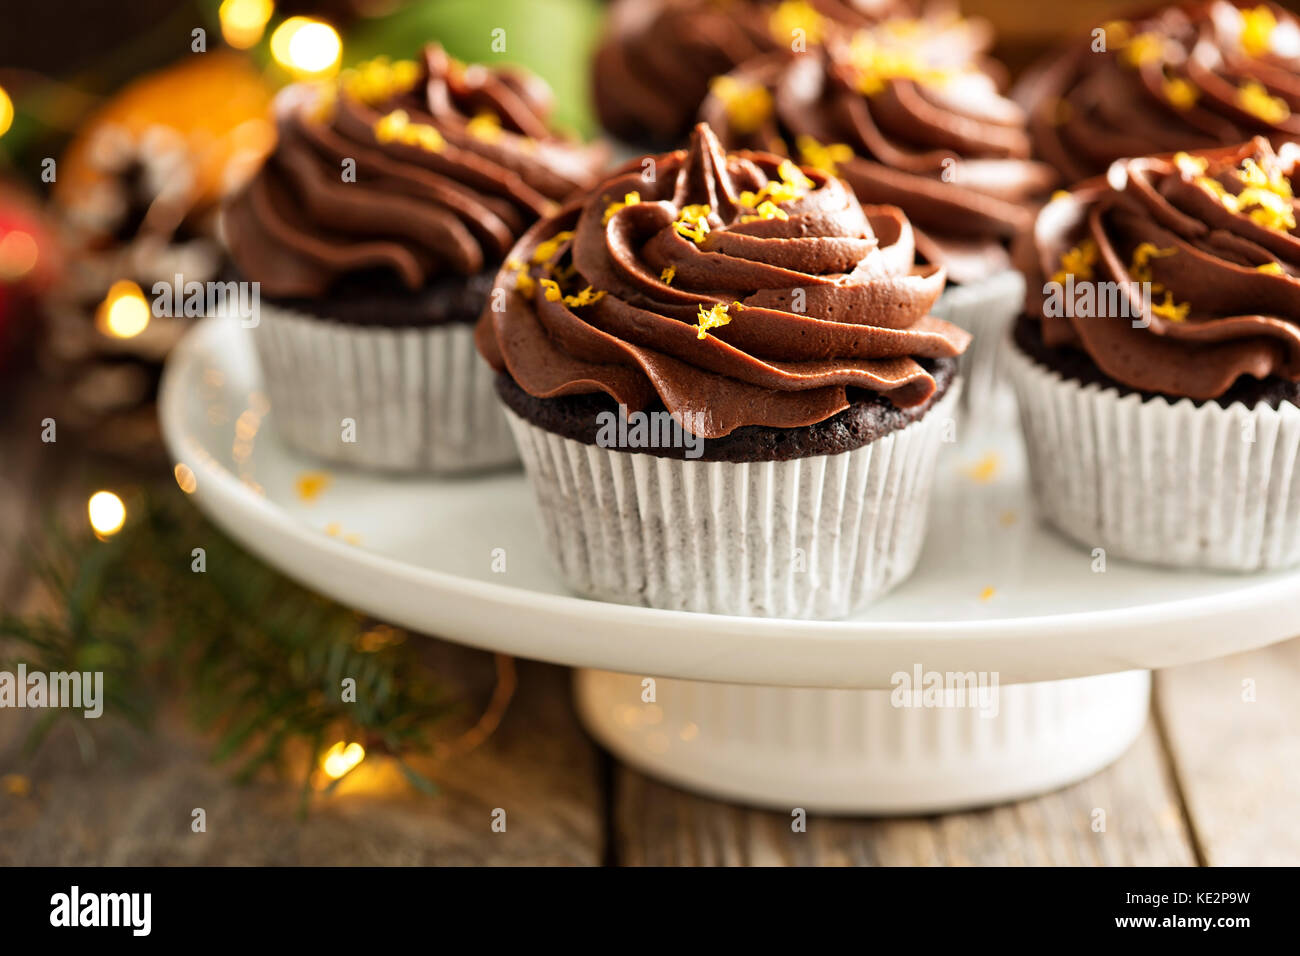 Chocolate Orange Cupcakes For Christmas With Ganache